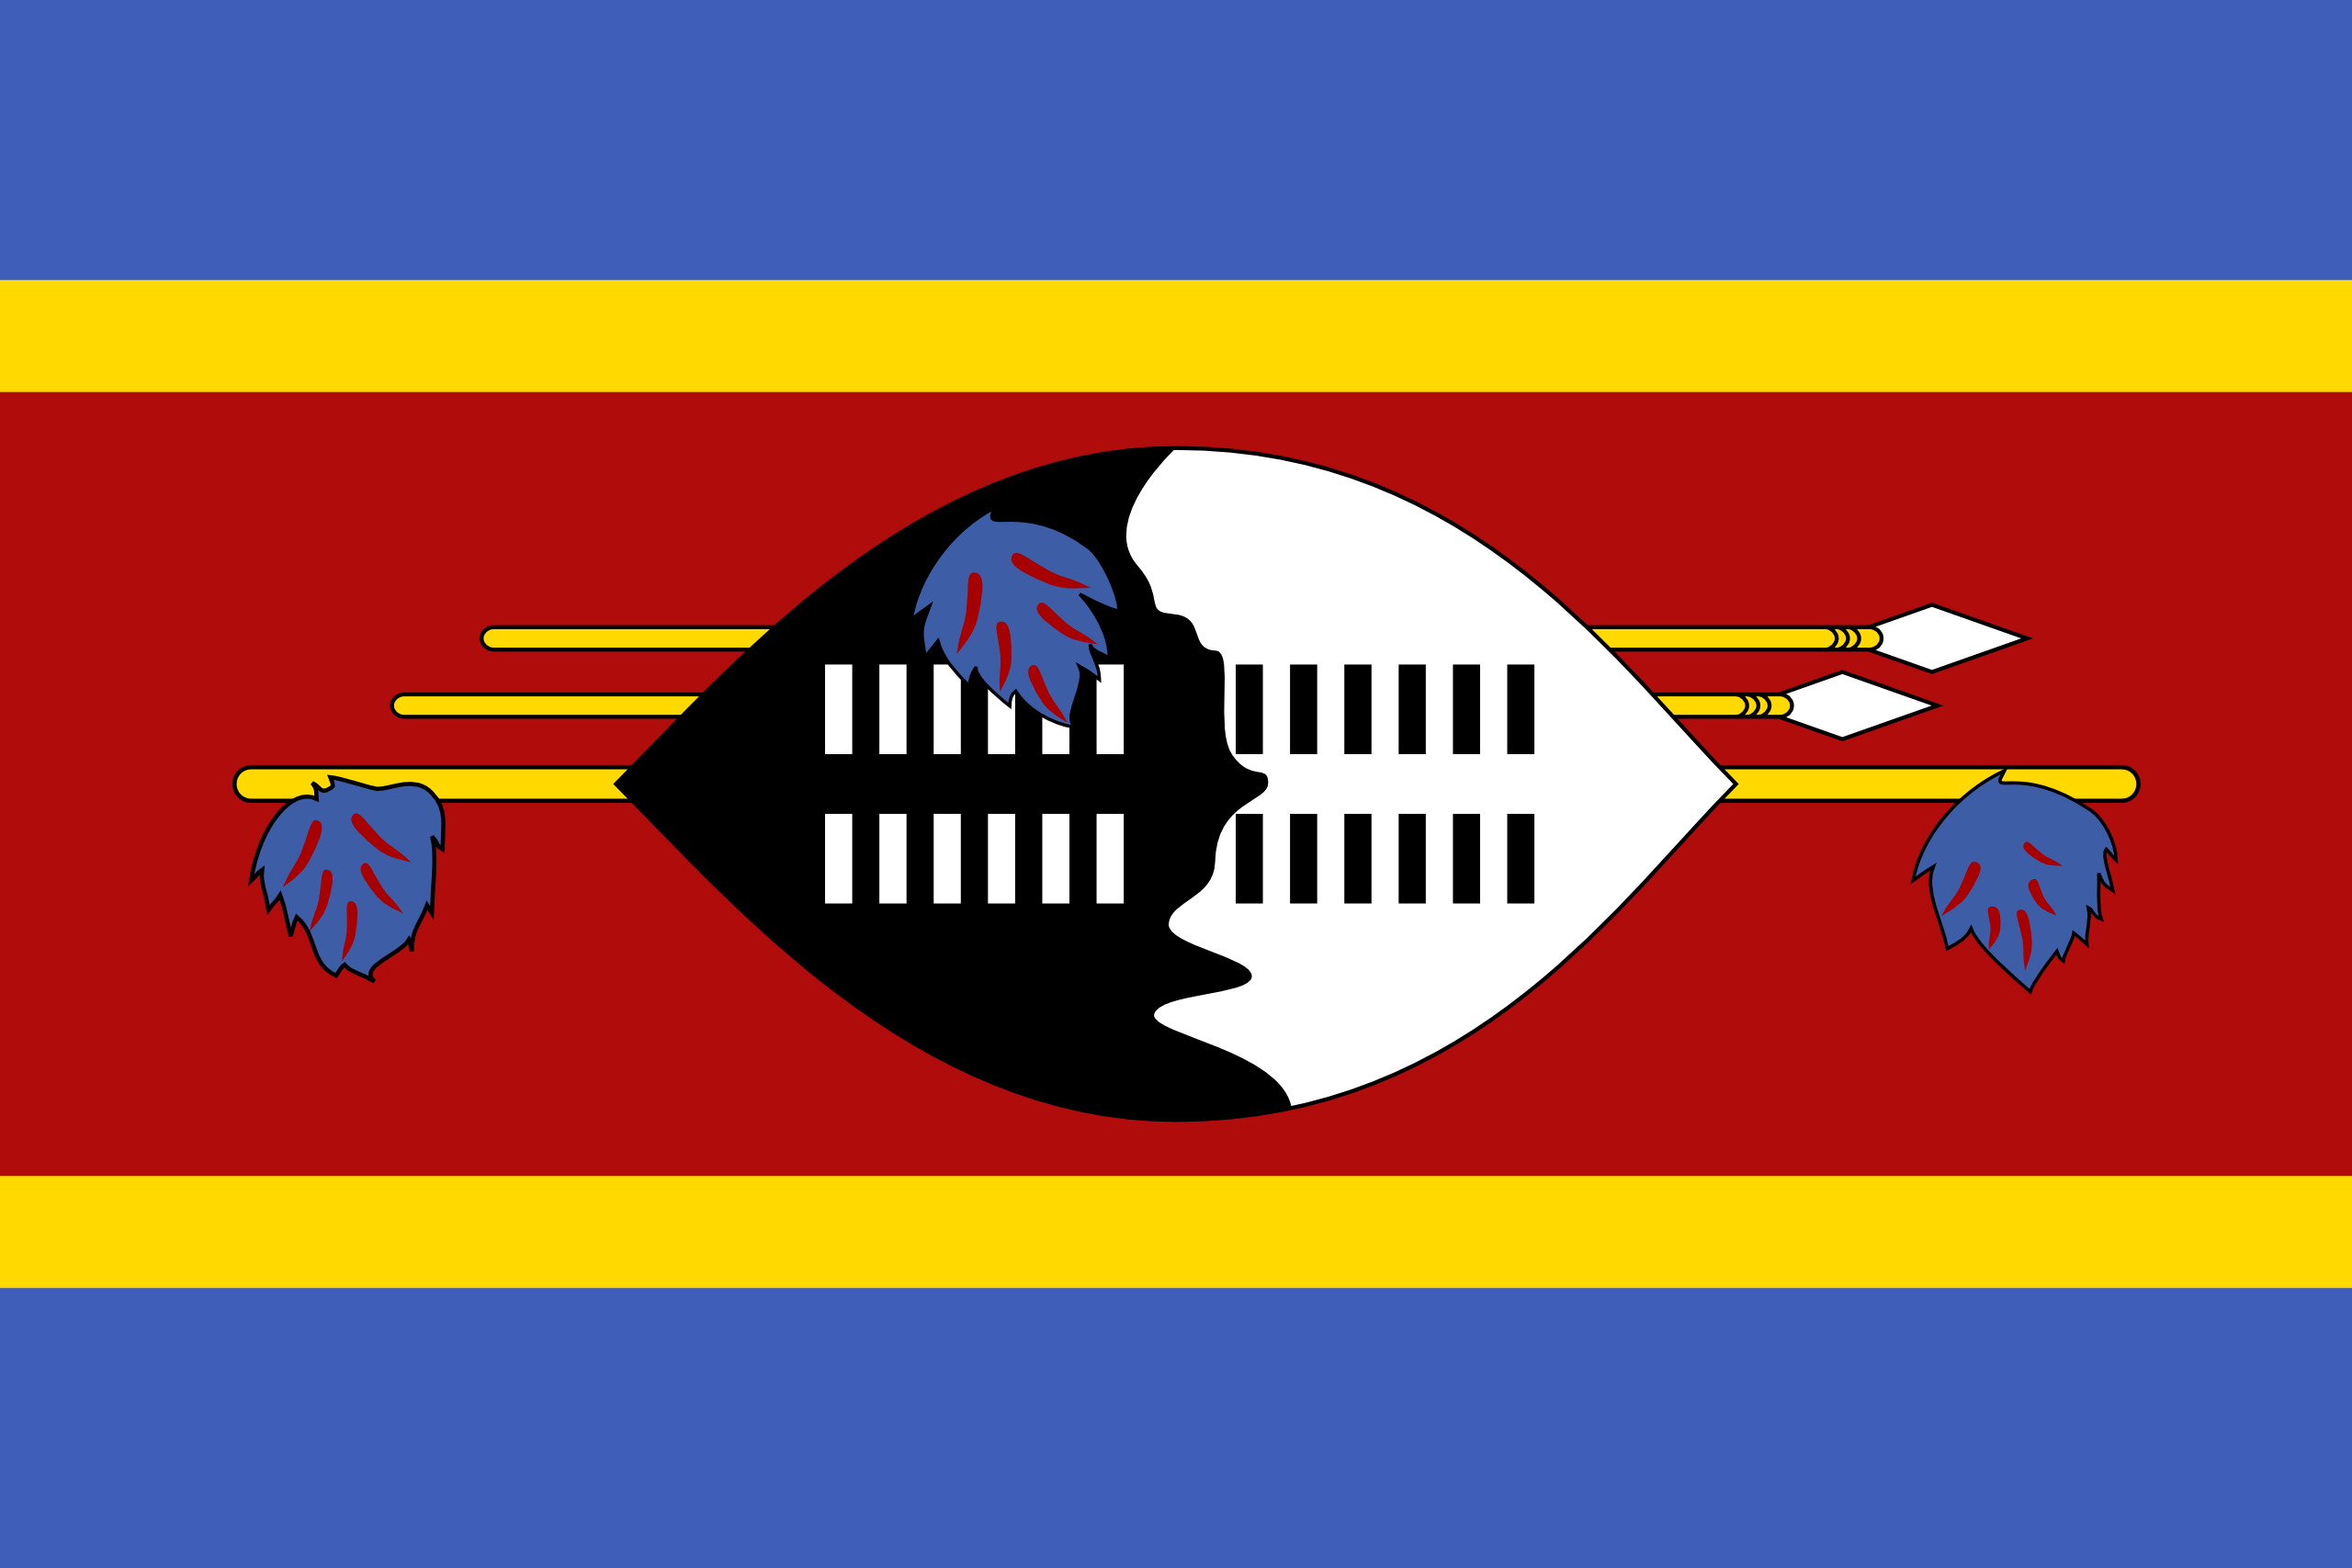 Swaziland Png - Swaziland   Flags of countries